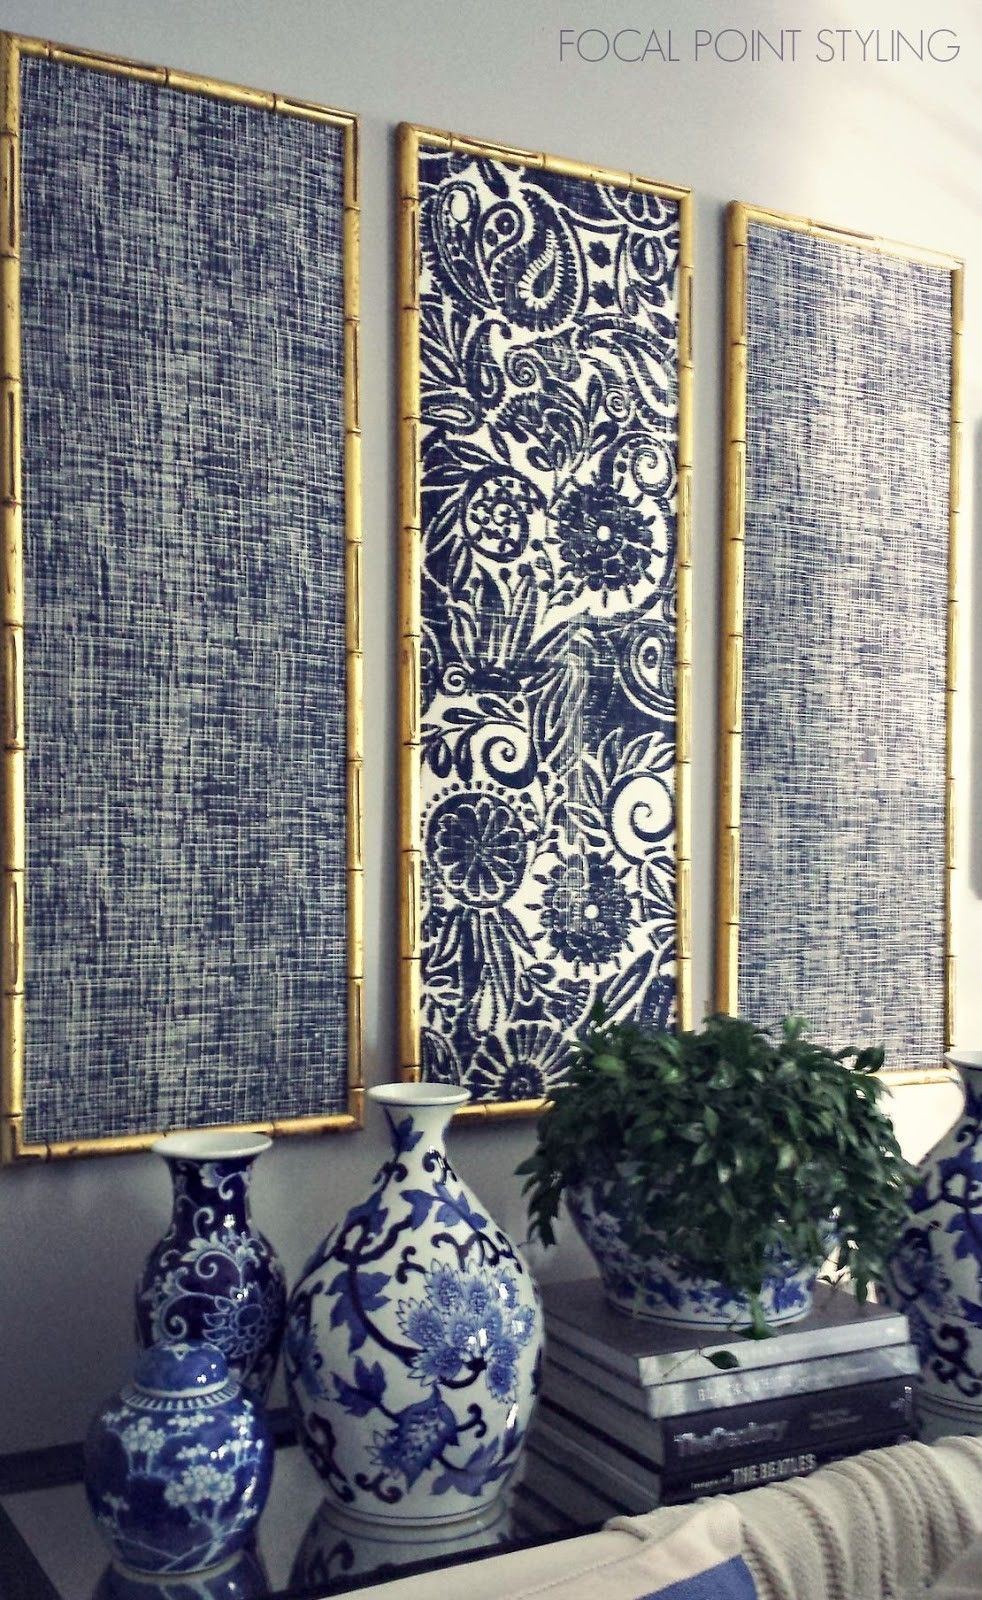 Wanddekoration Asiatisch Diy Wall Art With Framed Fabric Interiors In 2019 Diy Wall